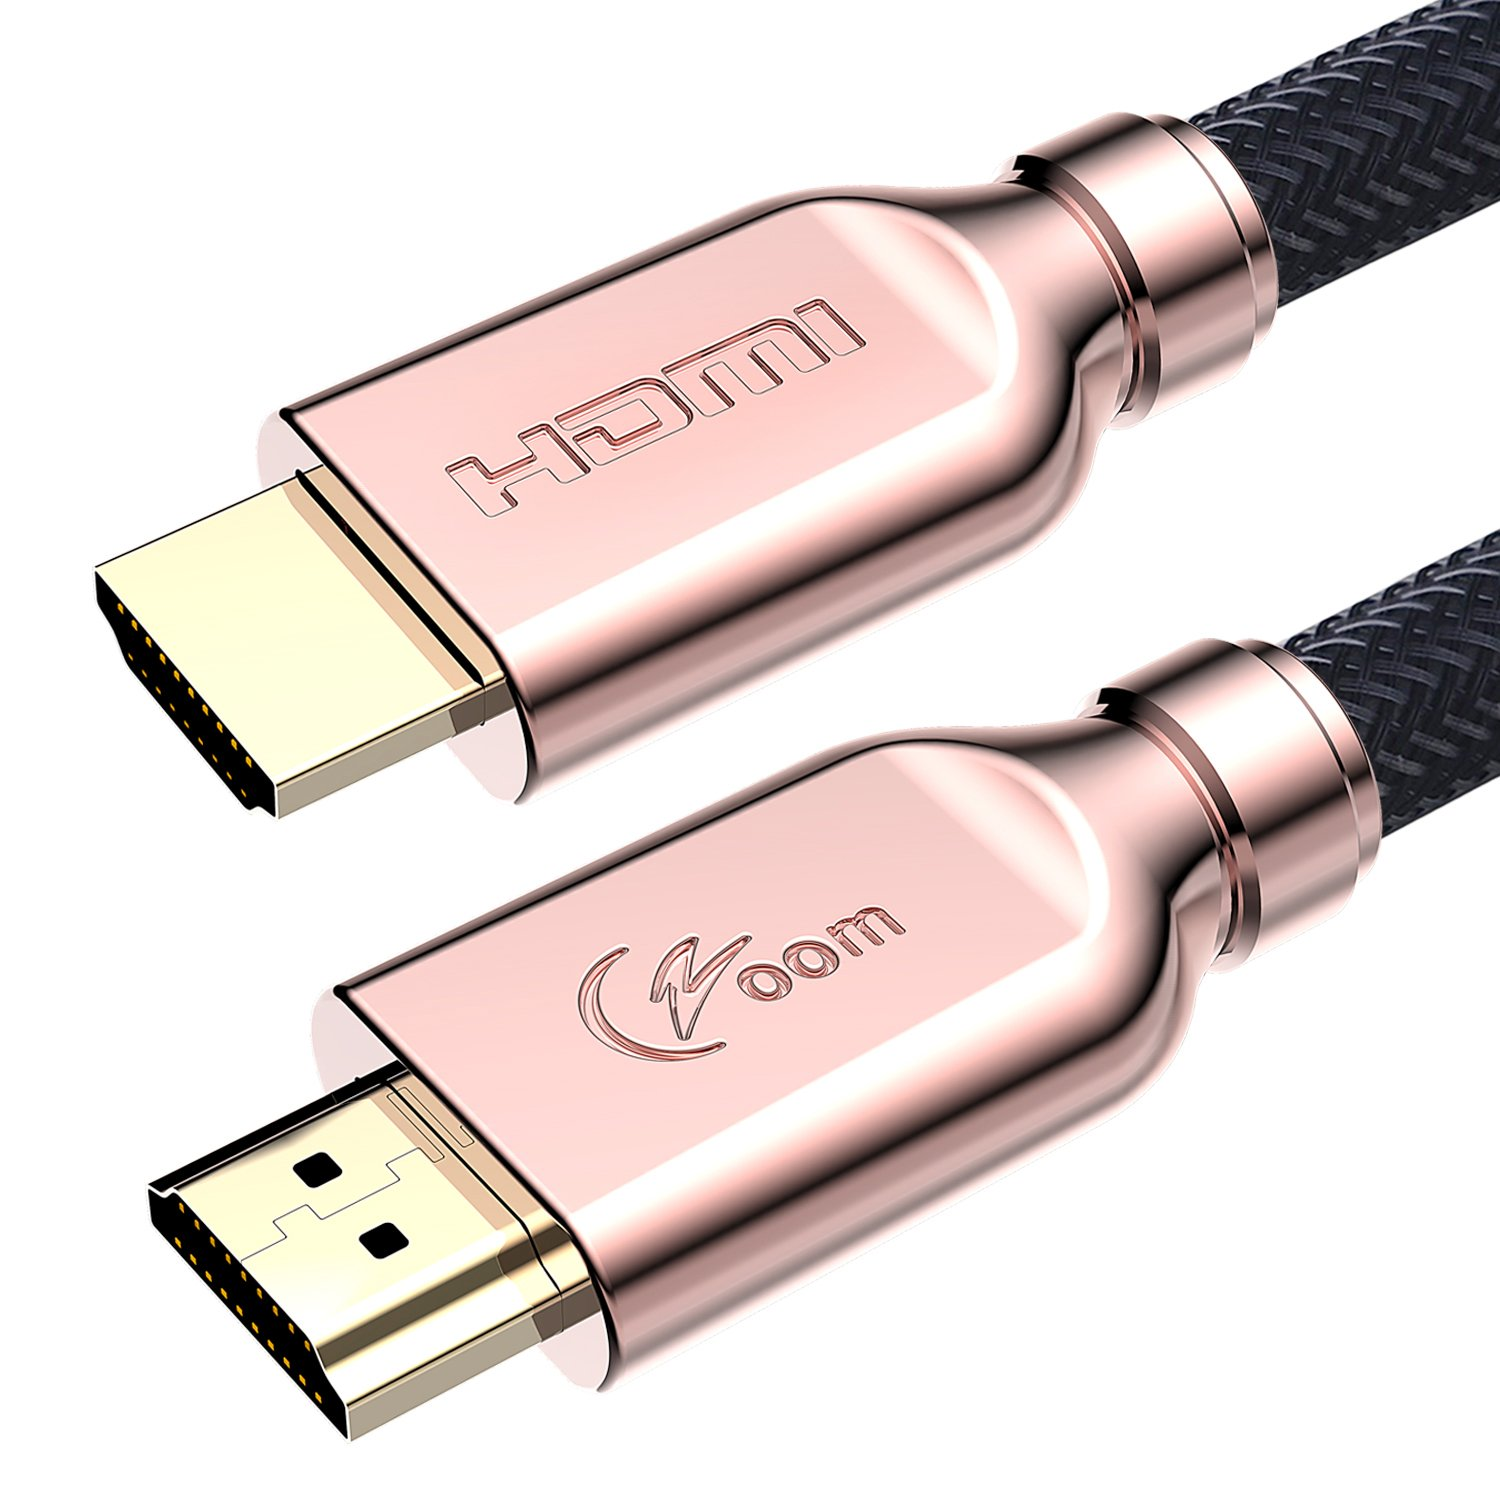 4K HDMI Cable 6 Feet - Ultra High Speed 18Gbps HDMI 2.0 Cable - 28AWG Braided HDMI Cord - Ethernet, Audio Return - Video 4K HDR UHD 2160p HD 1080p 3D for Blu-ray Player, Xbox, PS4 PS3, PC, Apple TV